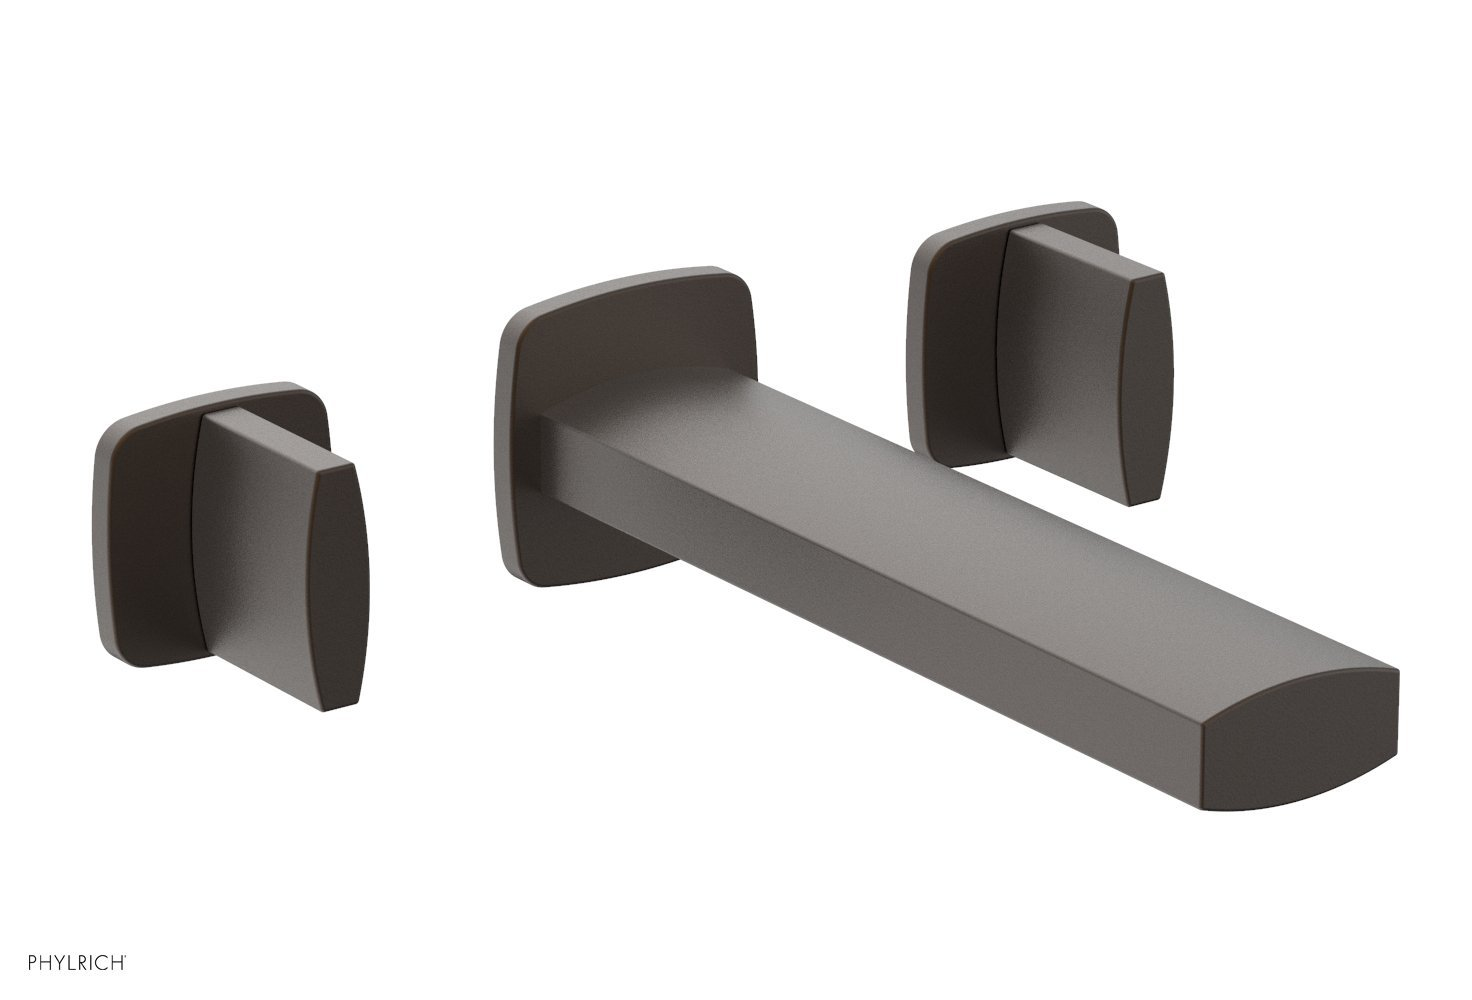 Phylrich 181-56-10B RADI Wall Tub Set - Blade Handles - Oil Rubbed Bronze